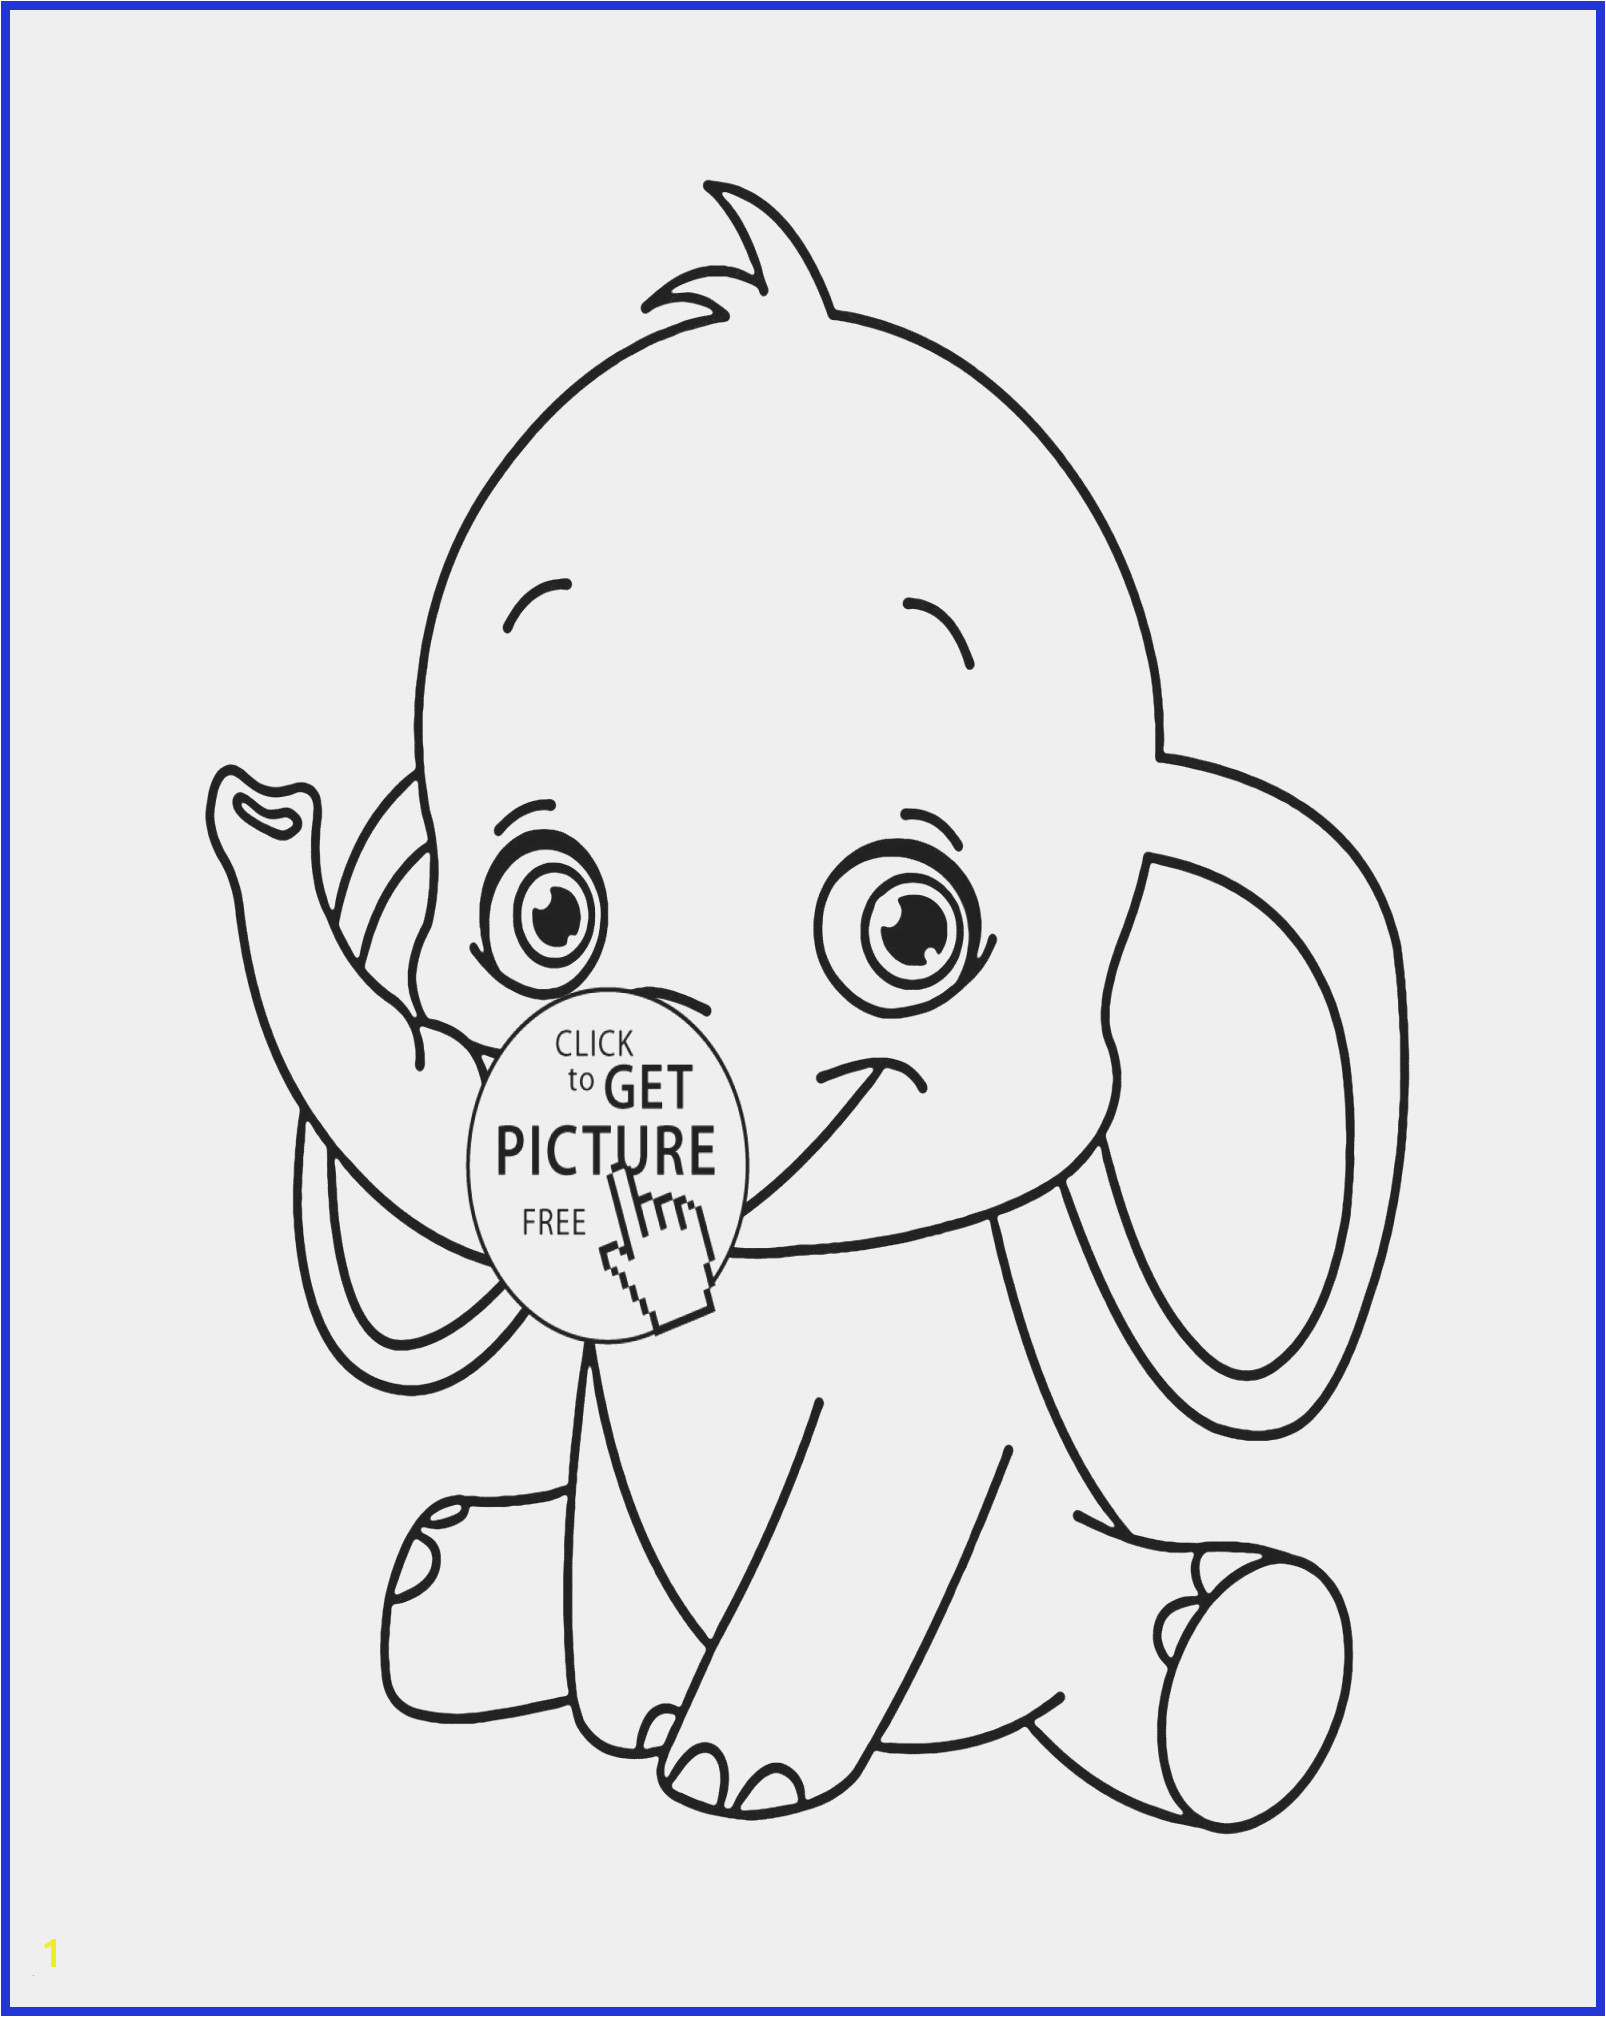 Free Animal Coloring Pages for Kids Cute Baby Animal Coloring Pages Unique Fresh Home Coloring